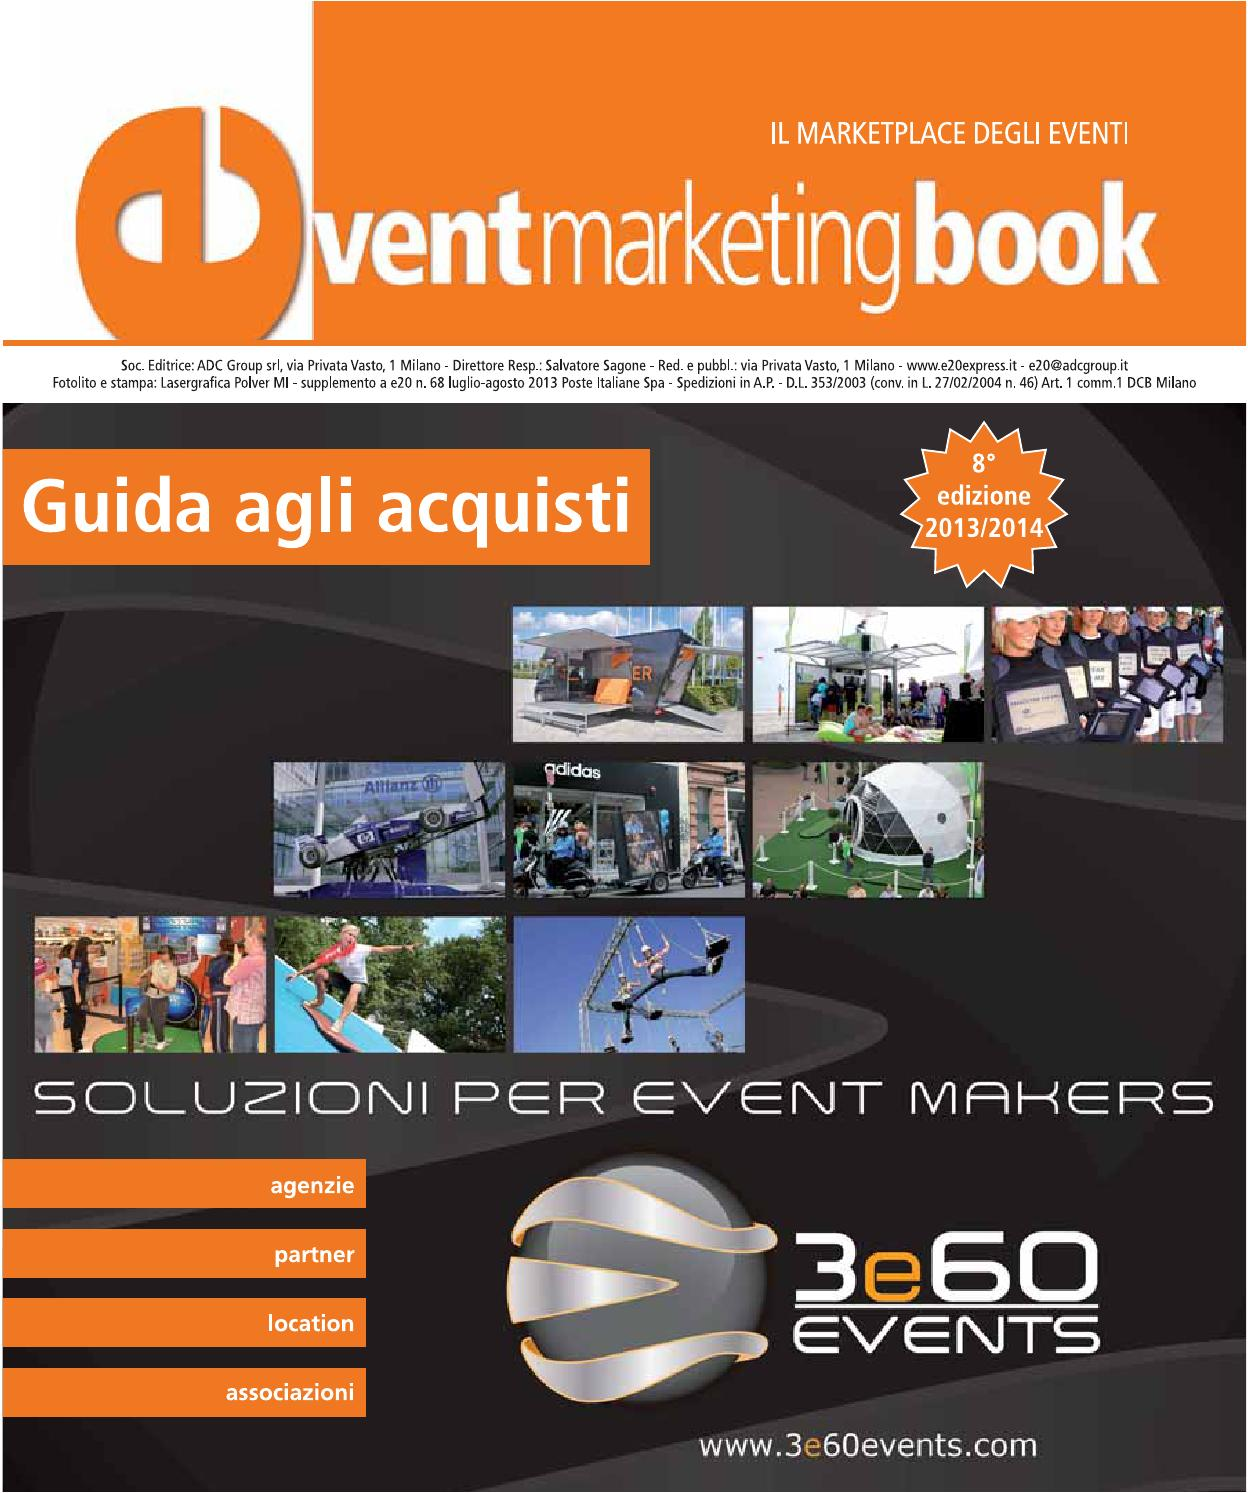 Event Marketing Book 2013 by ADC Group - issuu b981117a7673